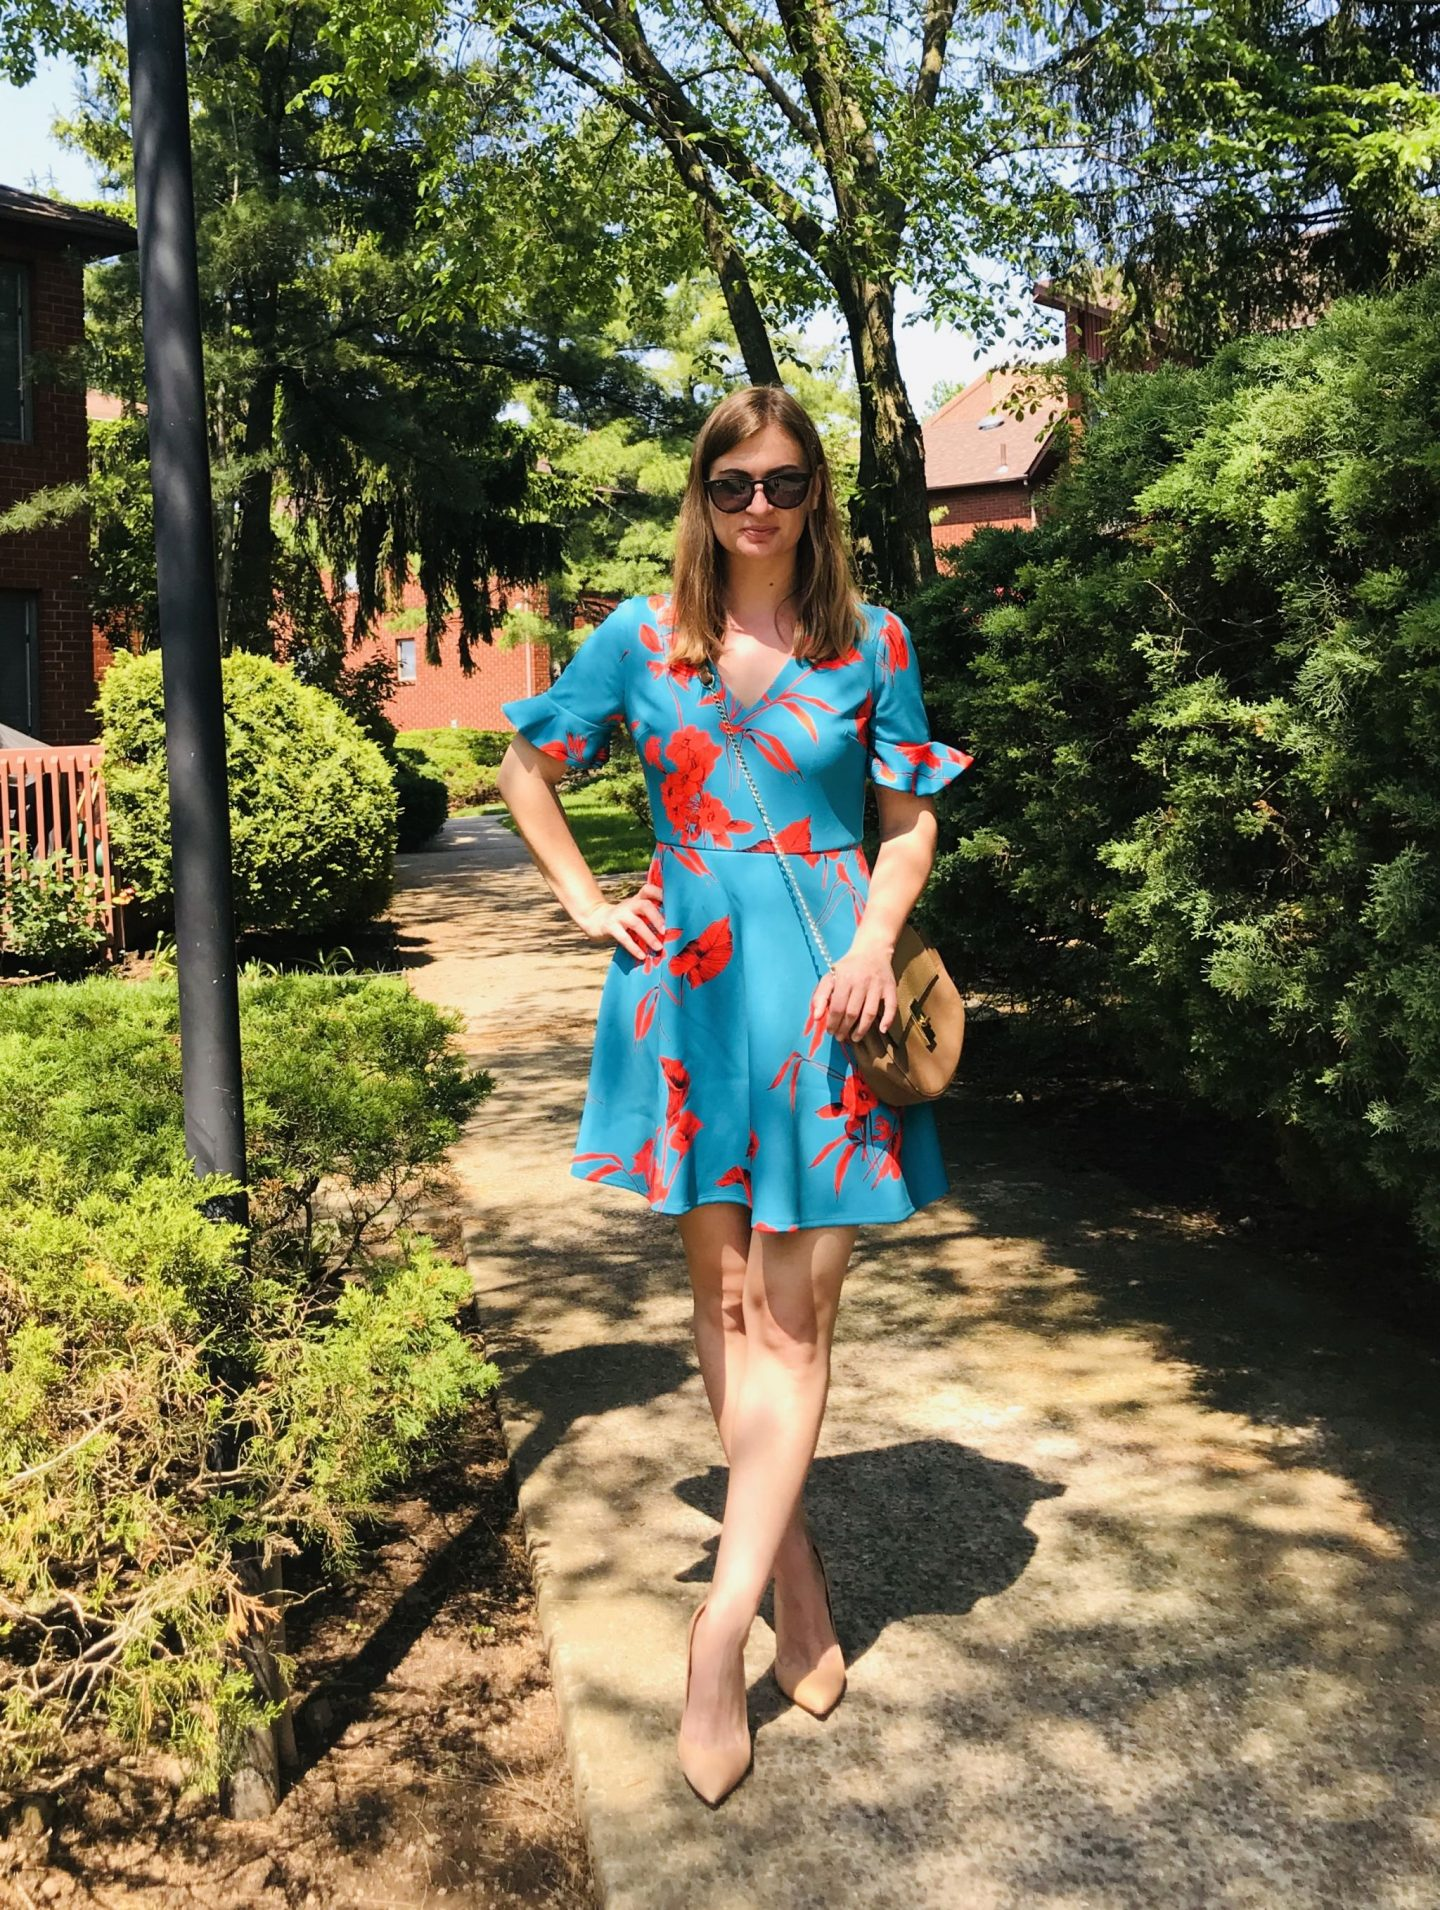 Fit & Flare Dresses: Day 1 of the EasilyDressed Challenge